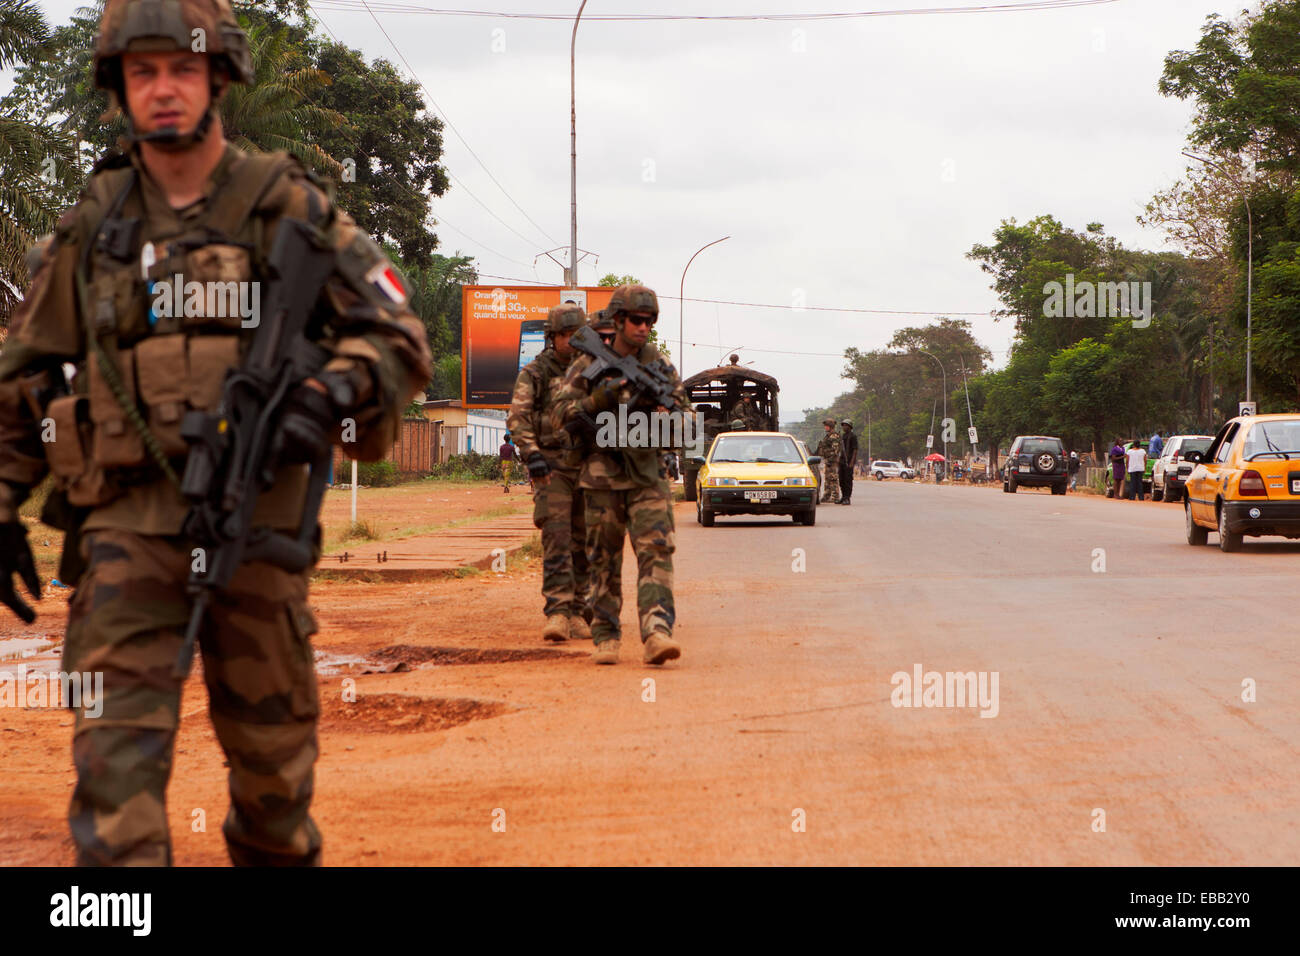 French troops on patrol  Bangui, Central African Republic - Stock Image